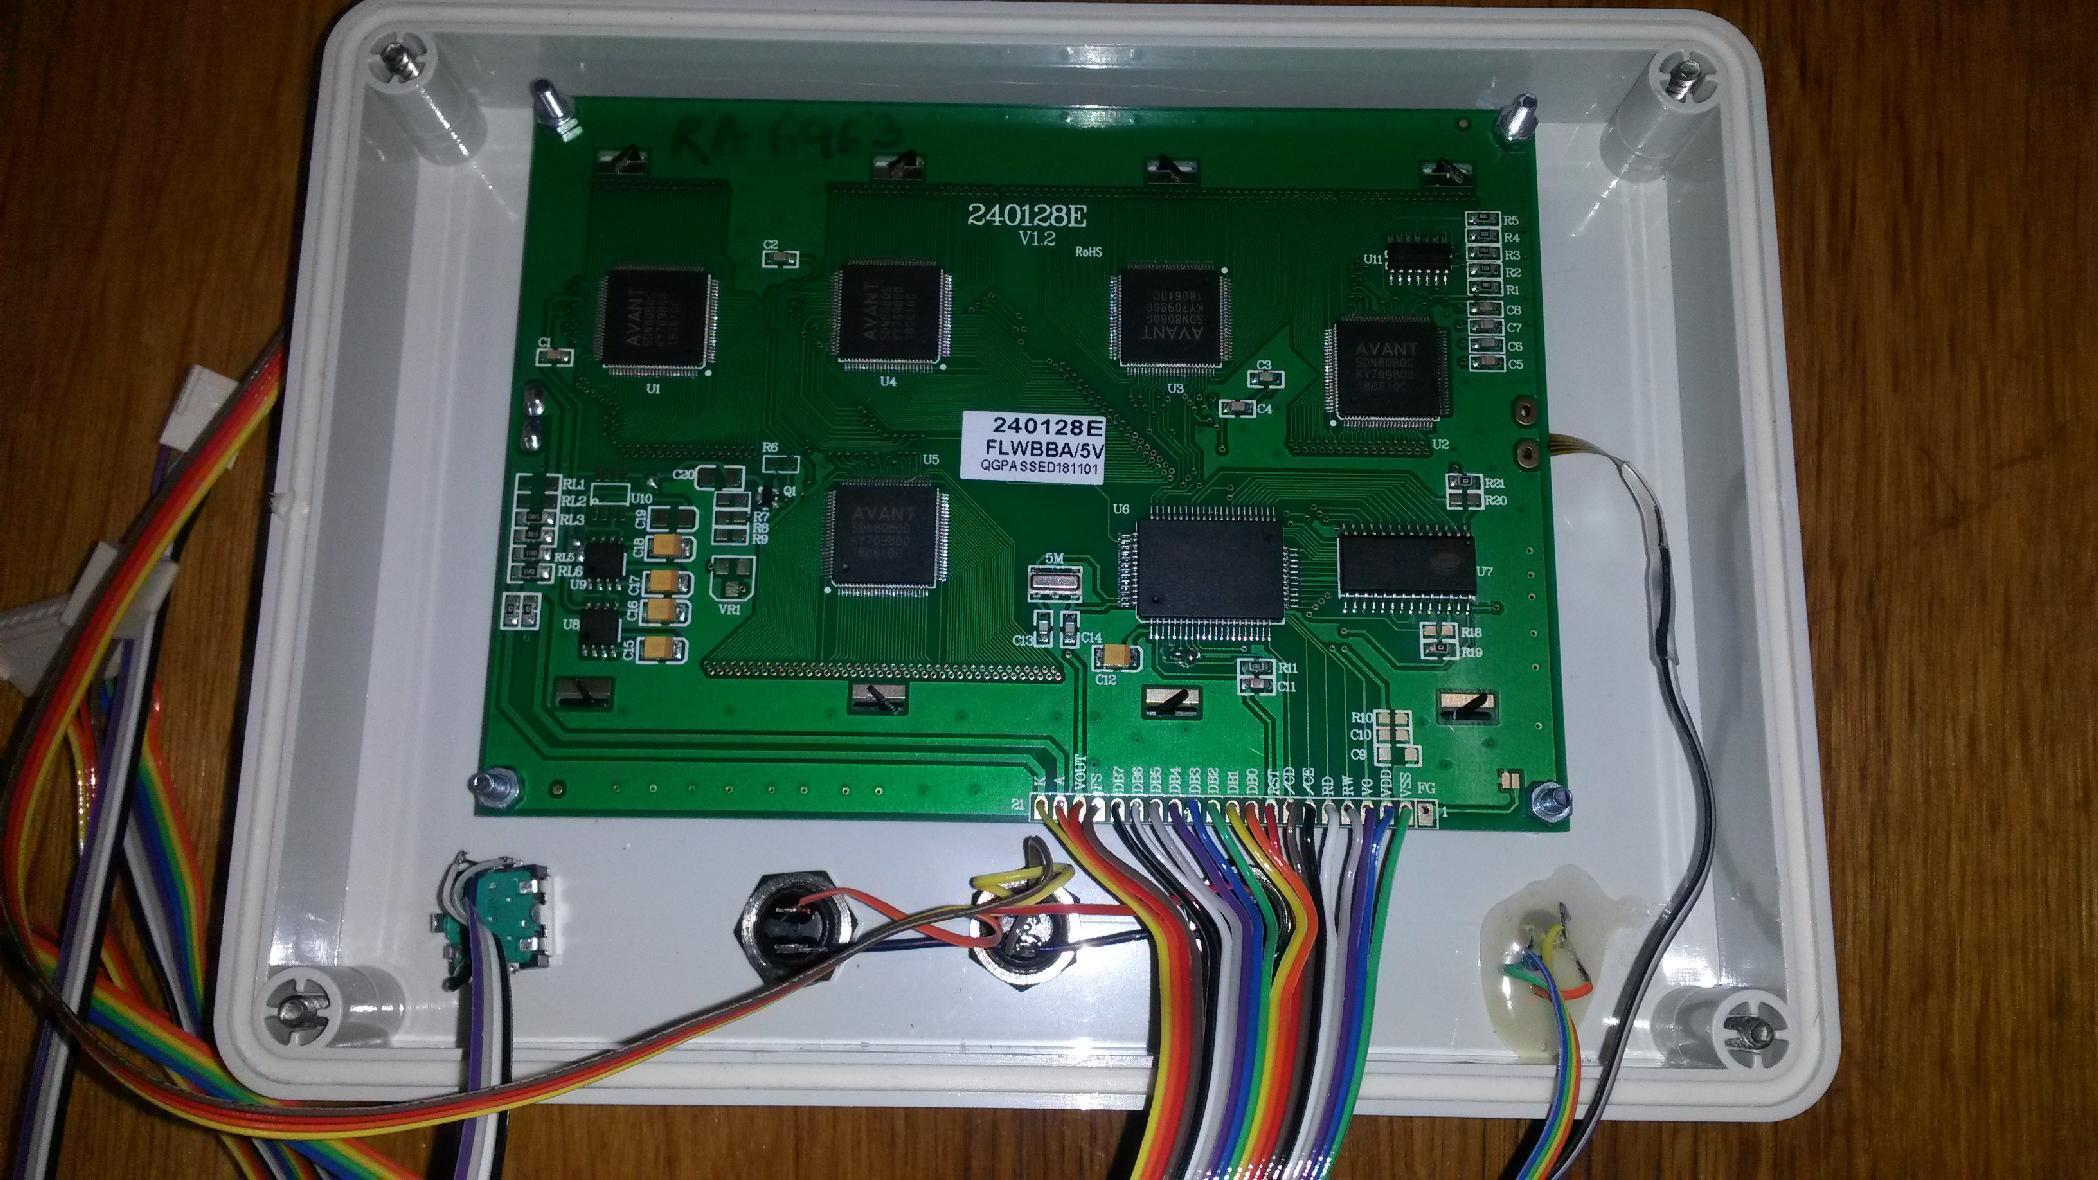 An experimental open hardware and open source avionics (EFIS